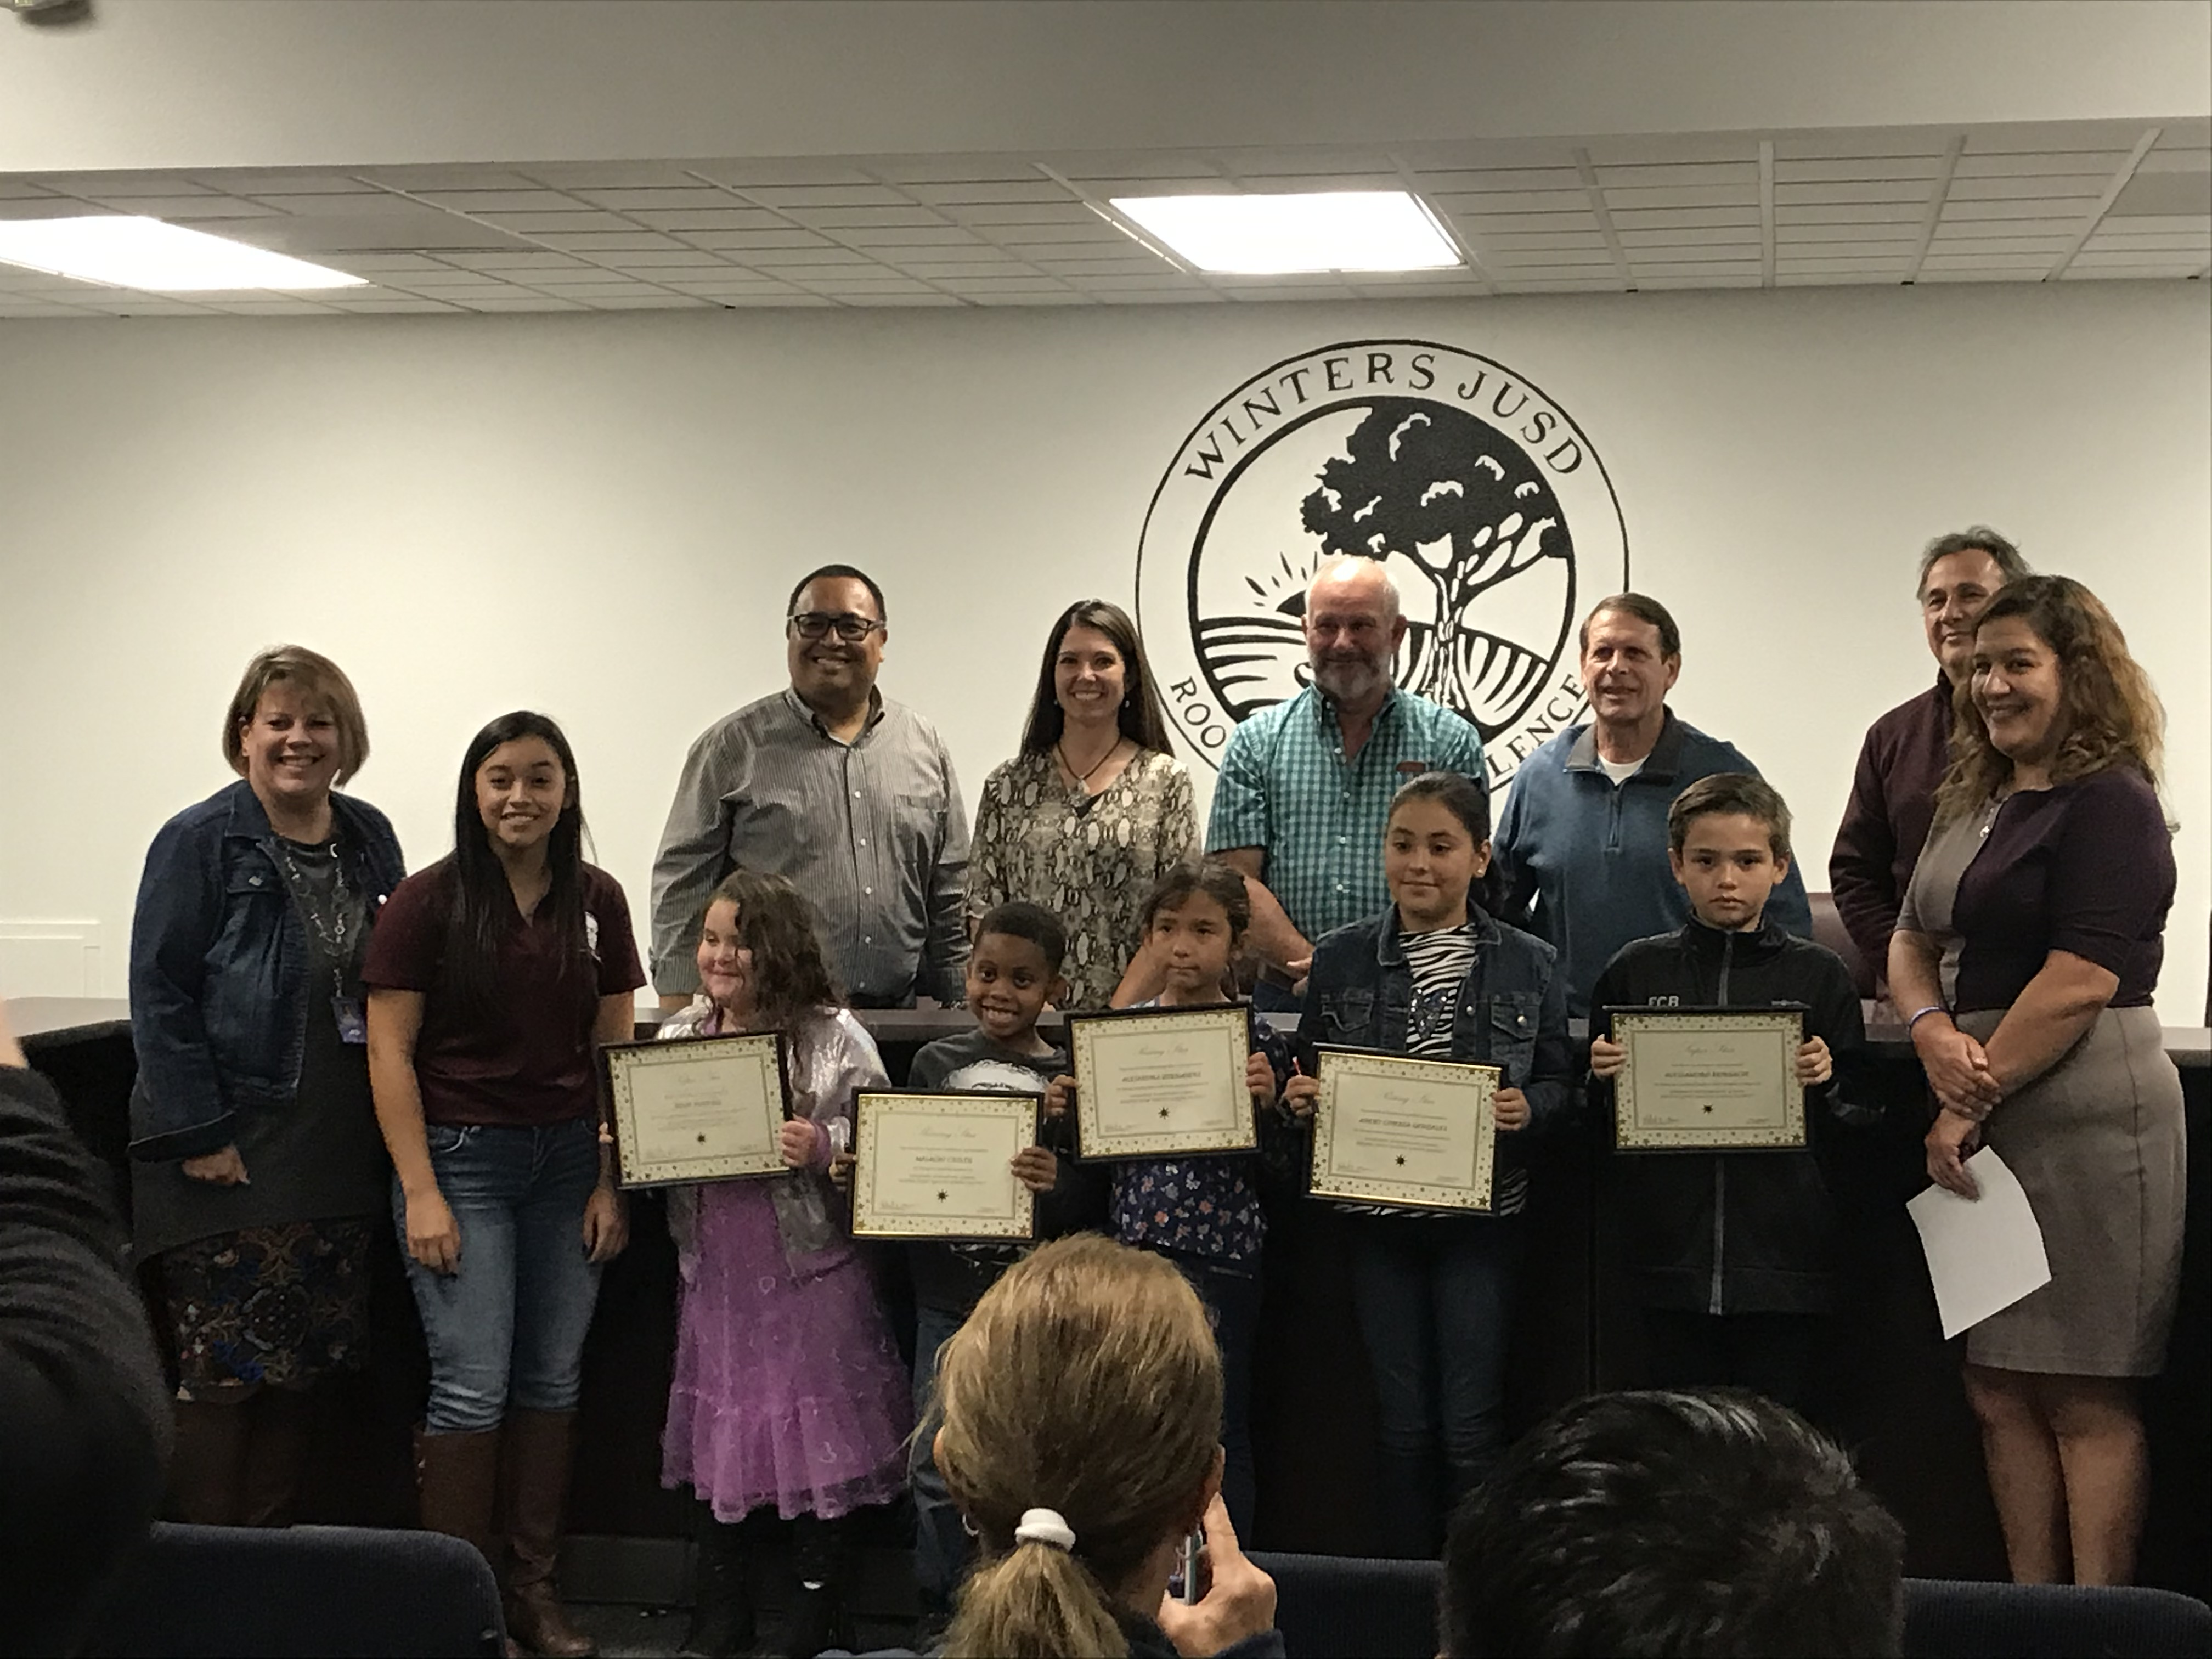 A celebration of Stars at the Board Meeting